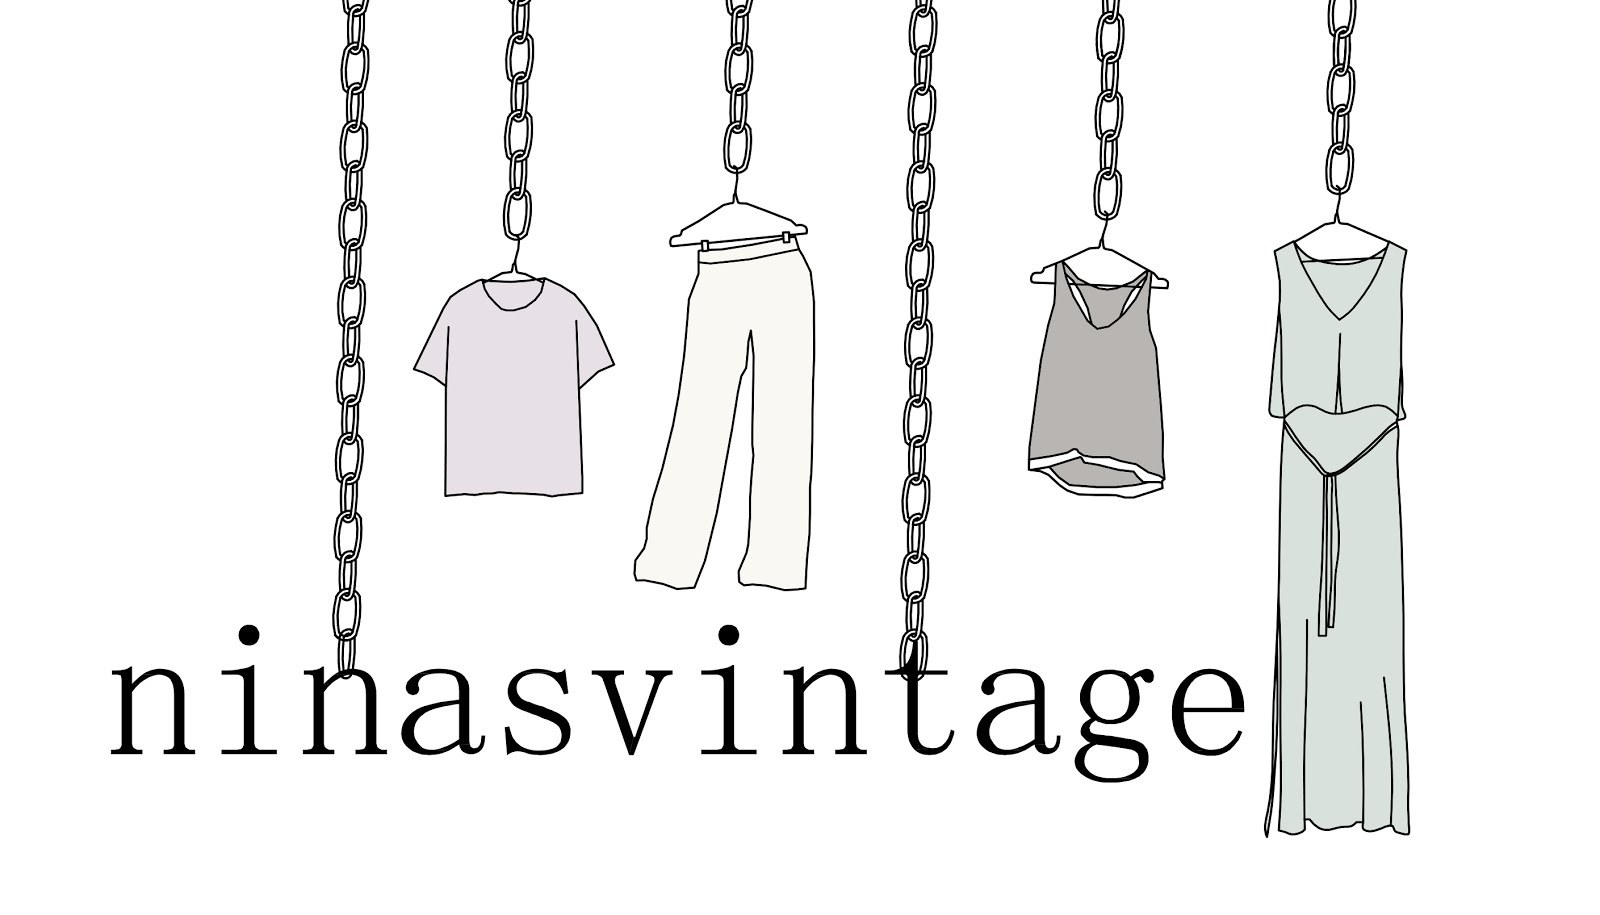 NINASVINTAGE